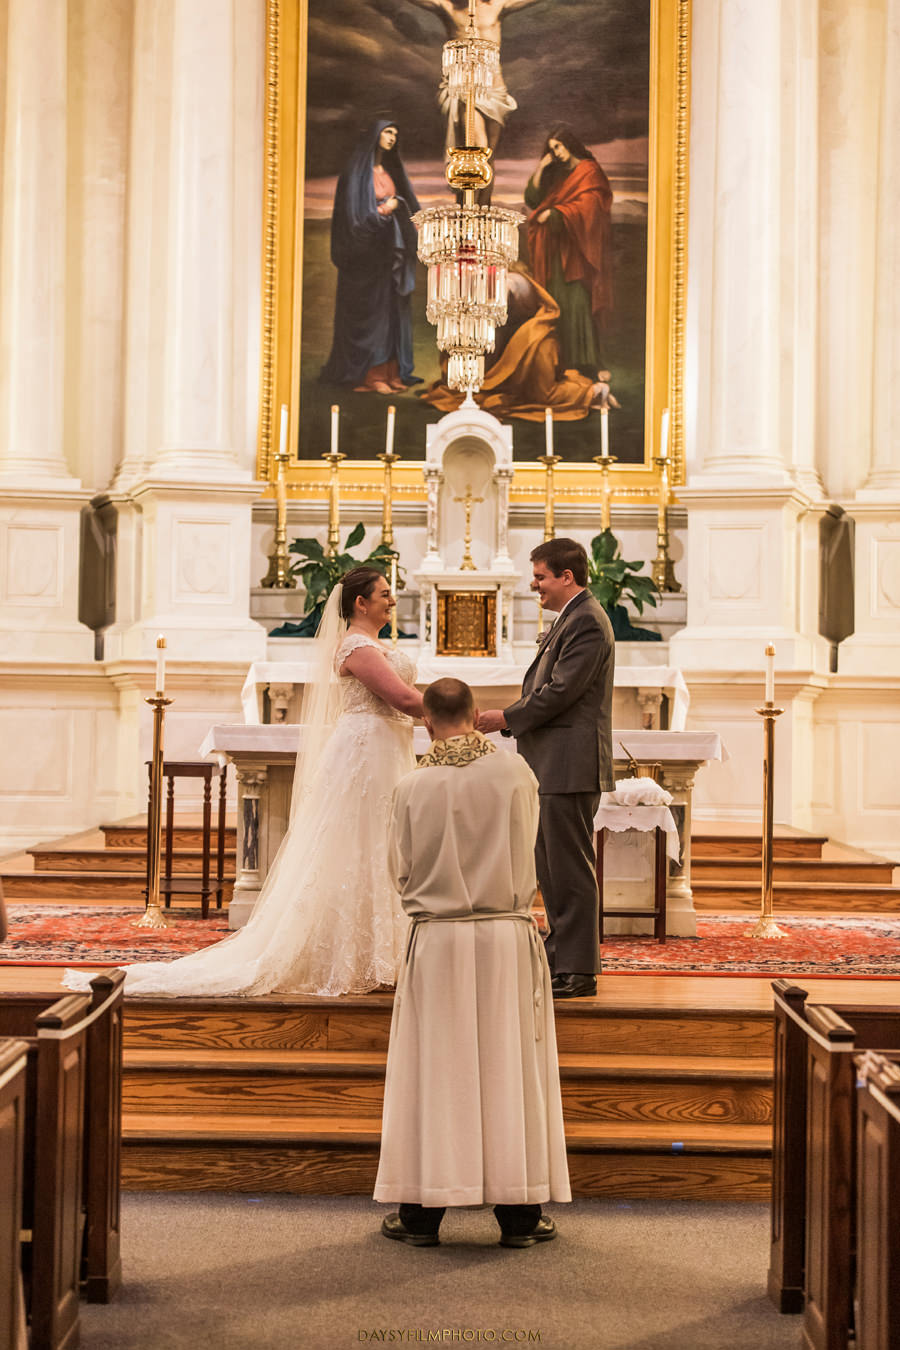 St. John the Evangelist Catholic Church Wedding inside church